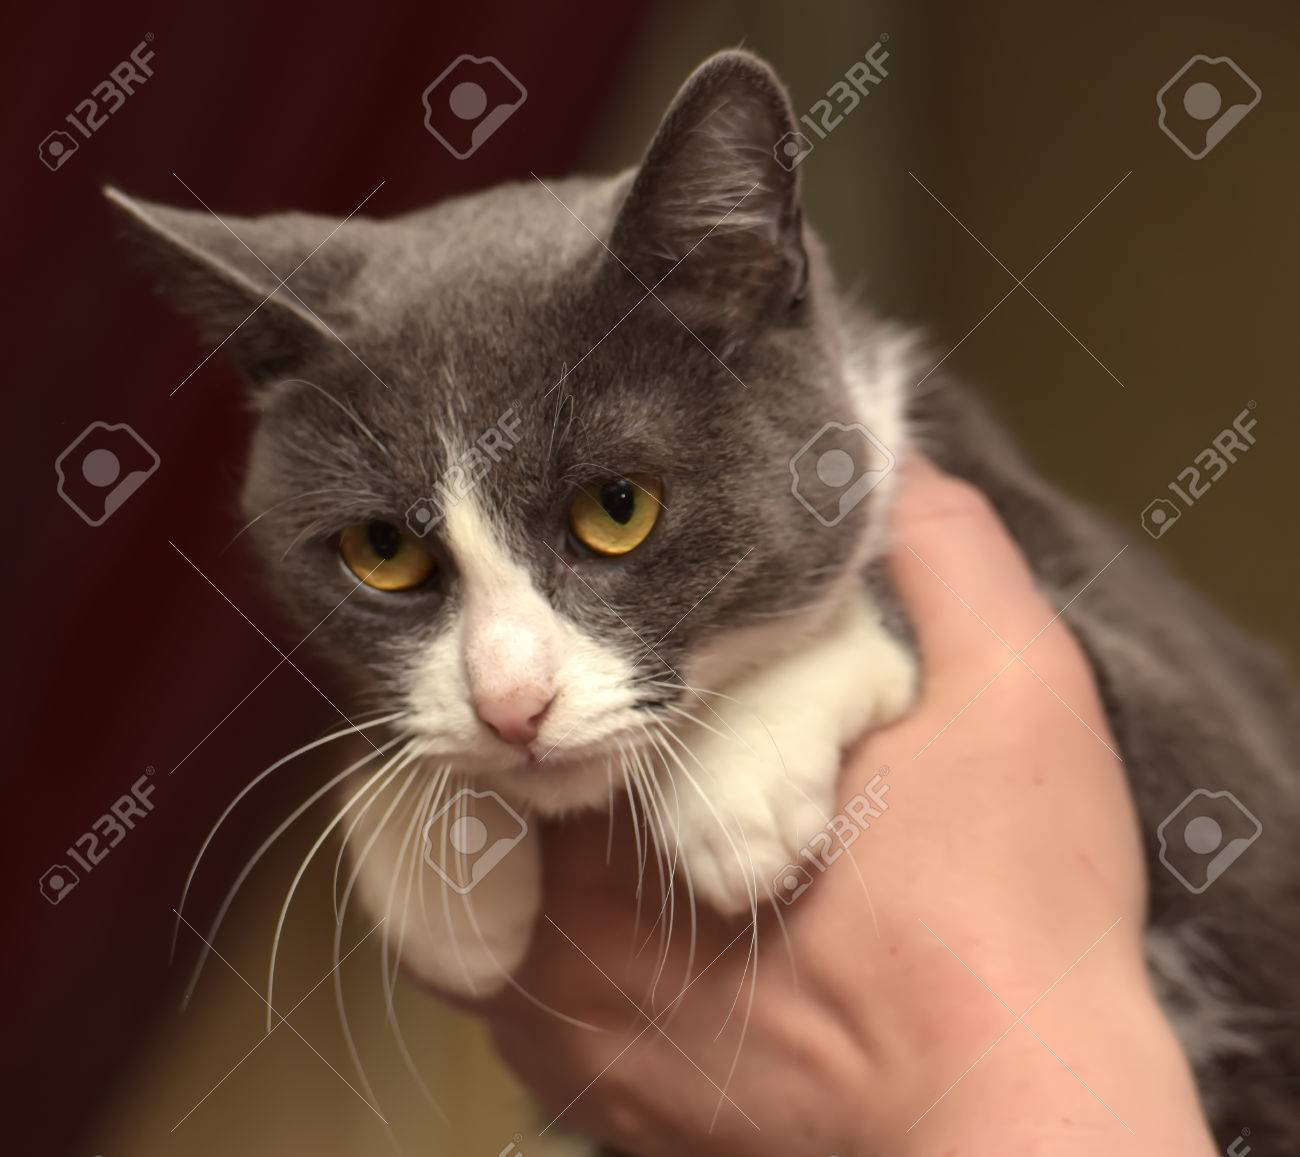 Gray And White Shorthair Cat Half Breed Russian Blue In Her Arms Stock Photo Picture And Royalty Free Image Image 47073074